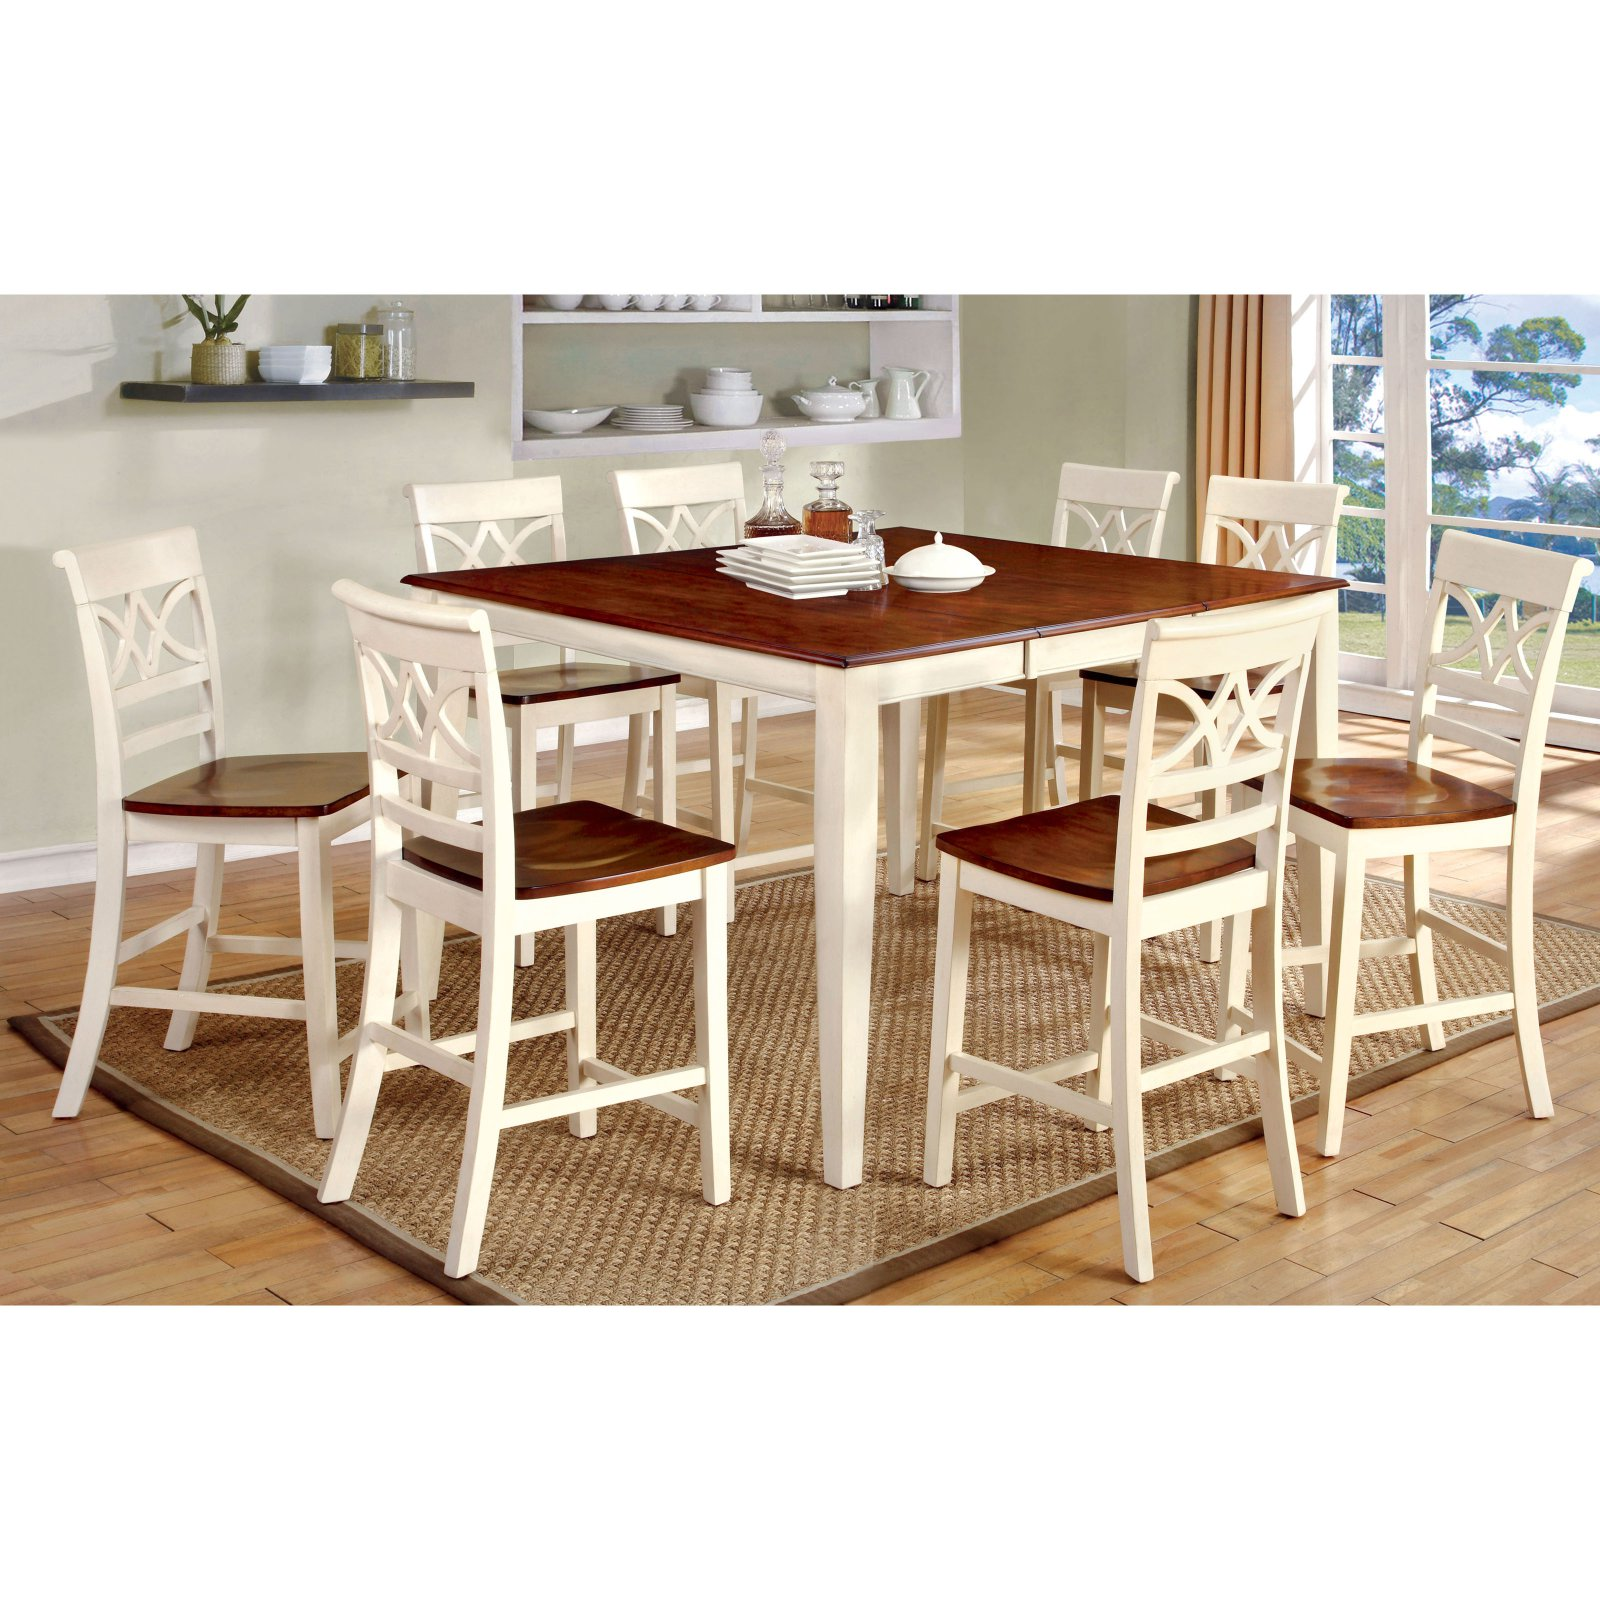 Furniture of America Seaberg Country Counter Height Dining Table